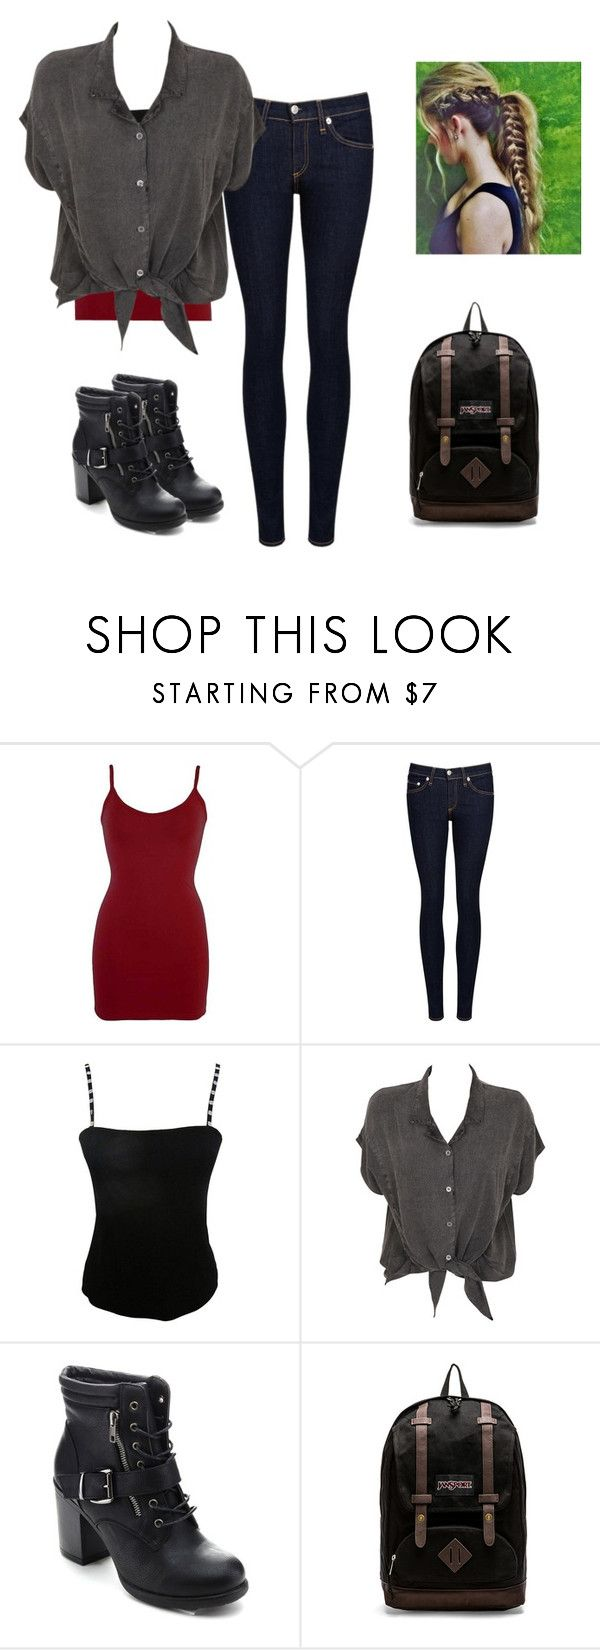 """""""Everyday Outfit"""" by amylightwood ❤ liked on Polyvore featuring BKE core, rag & bone/JEAN, Jean Muir, Evil Twin and JanSport"""